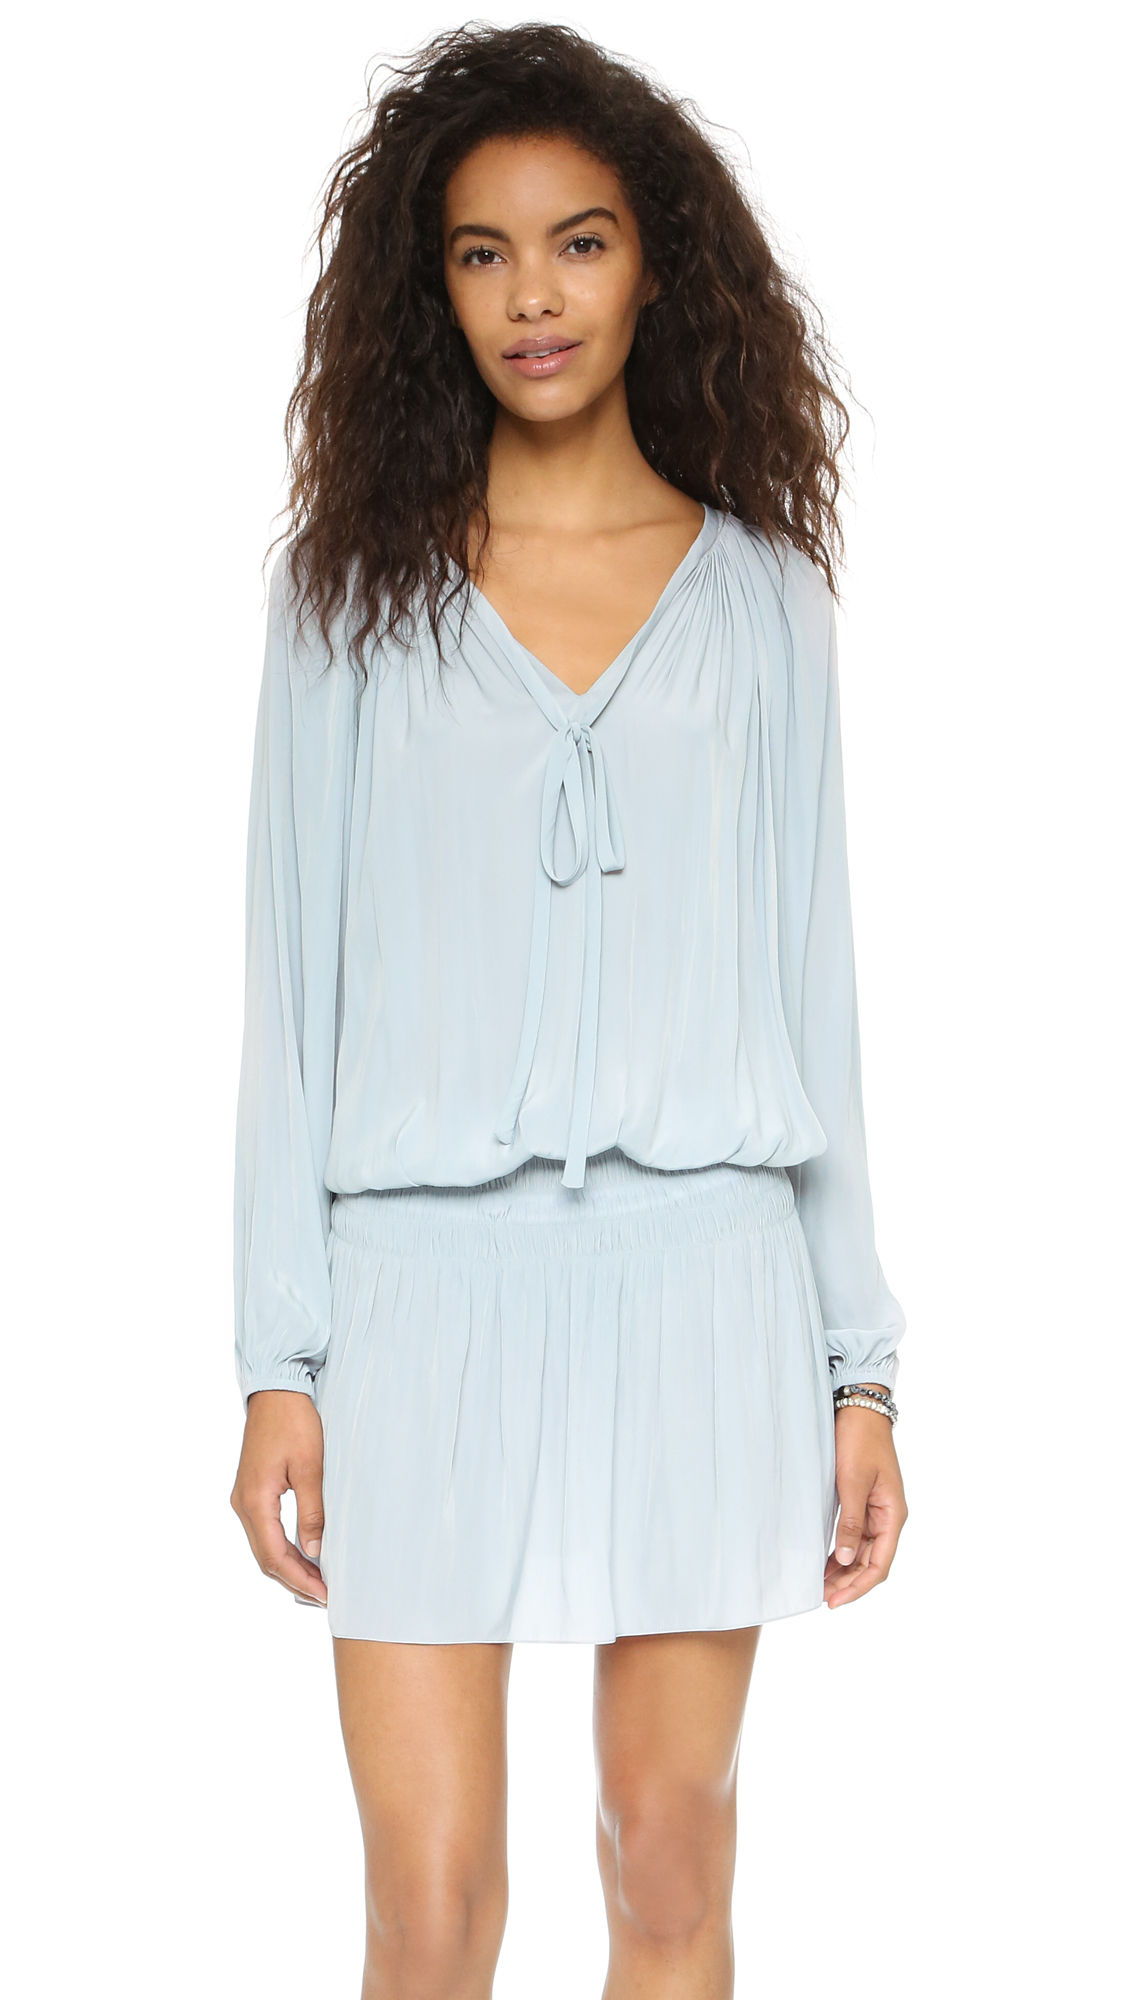 Ramy Brook Paris Dress - Silver